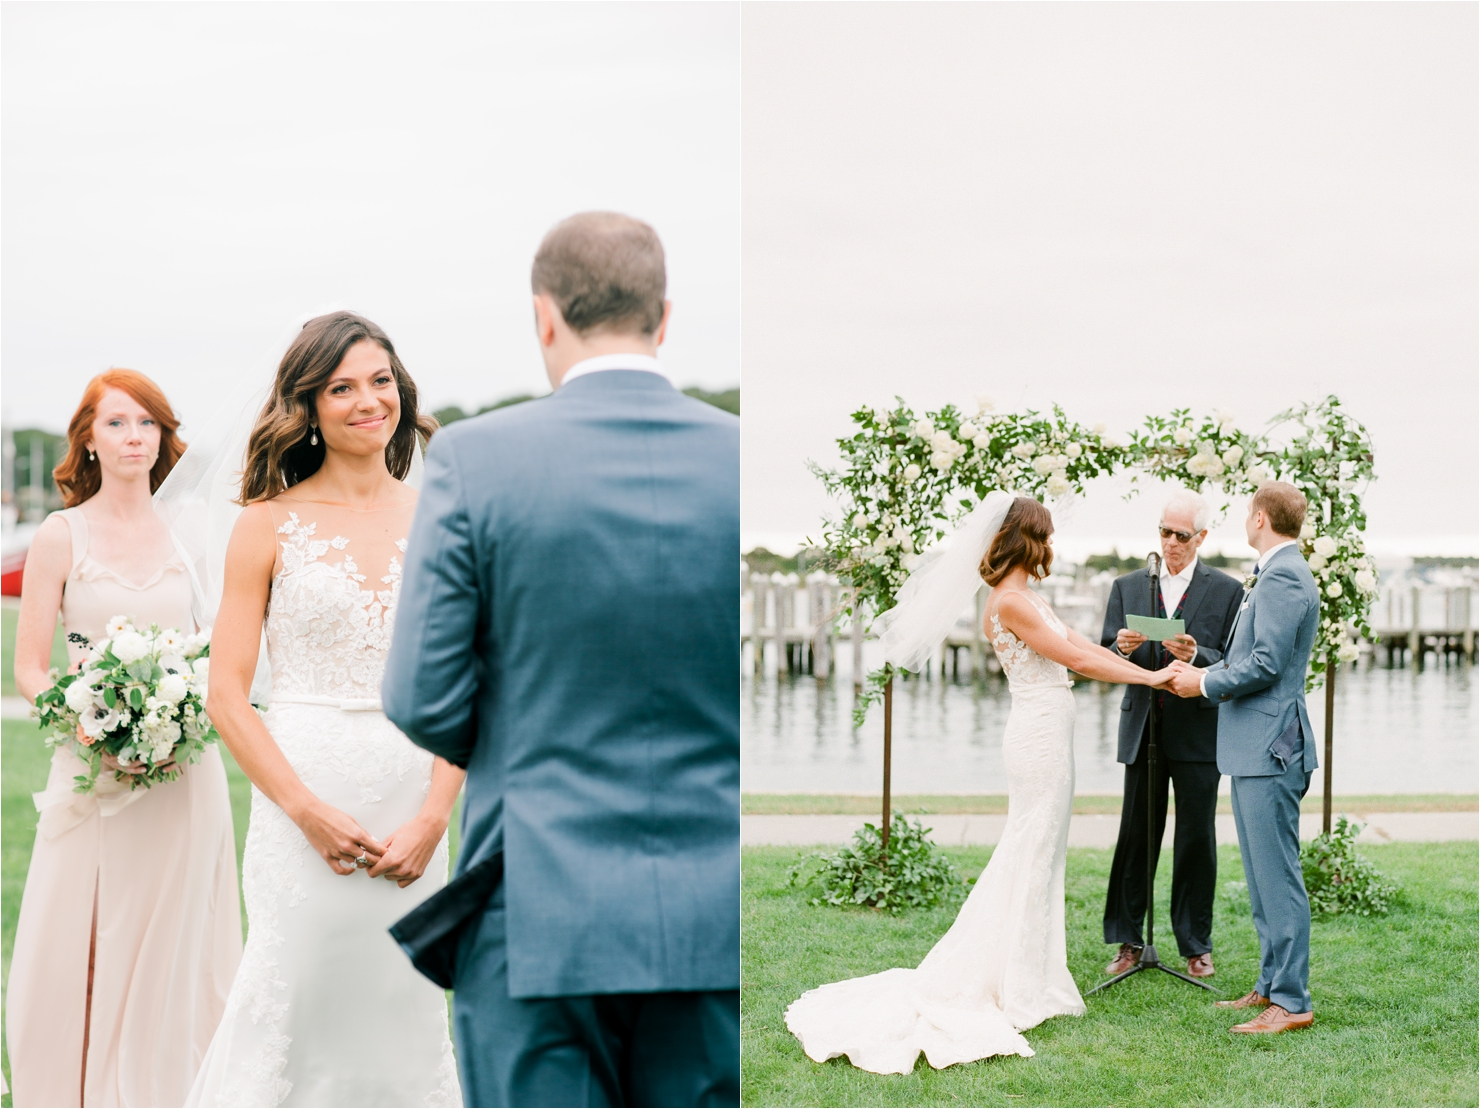 Bride and Groom getting married outside at Gurneys Montauk Start Island Resort